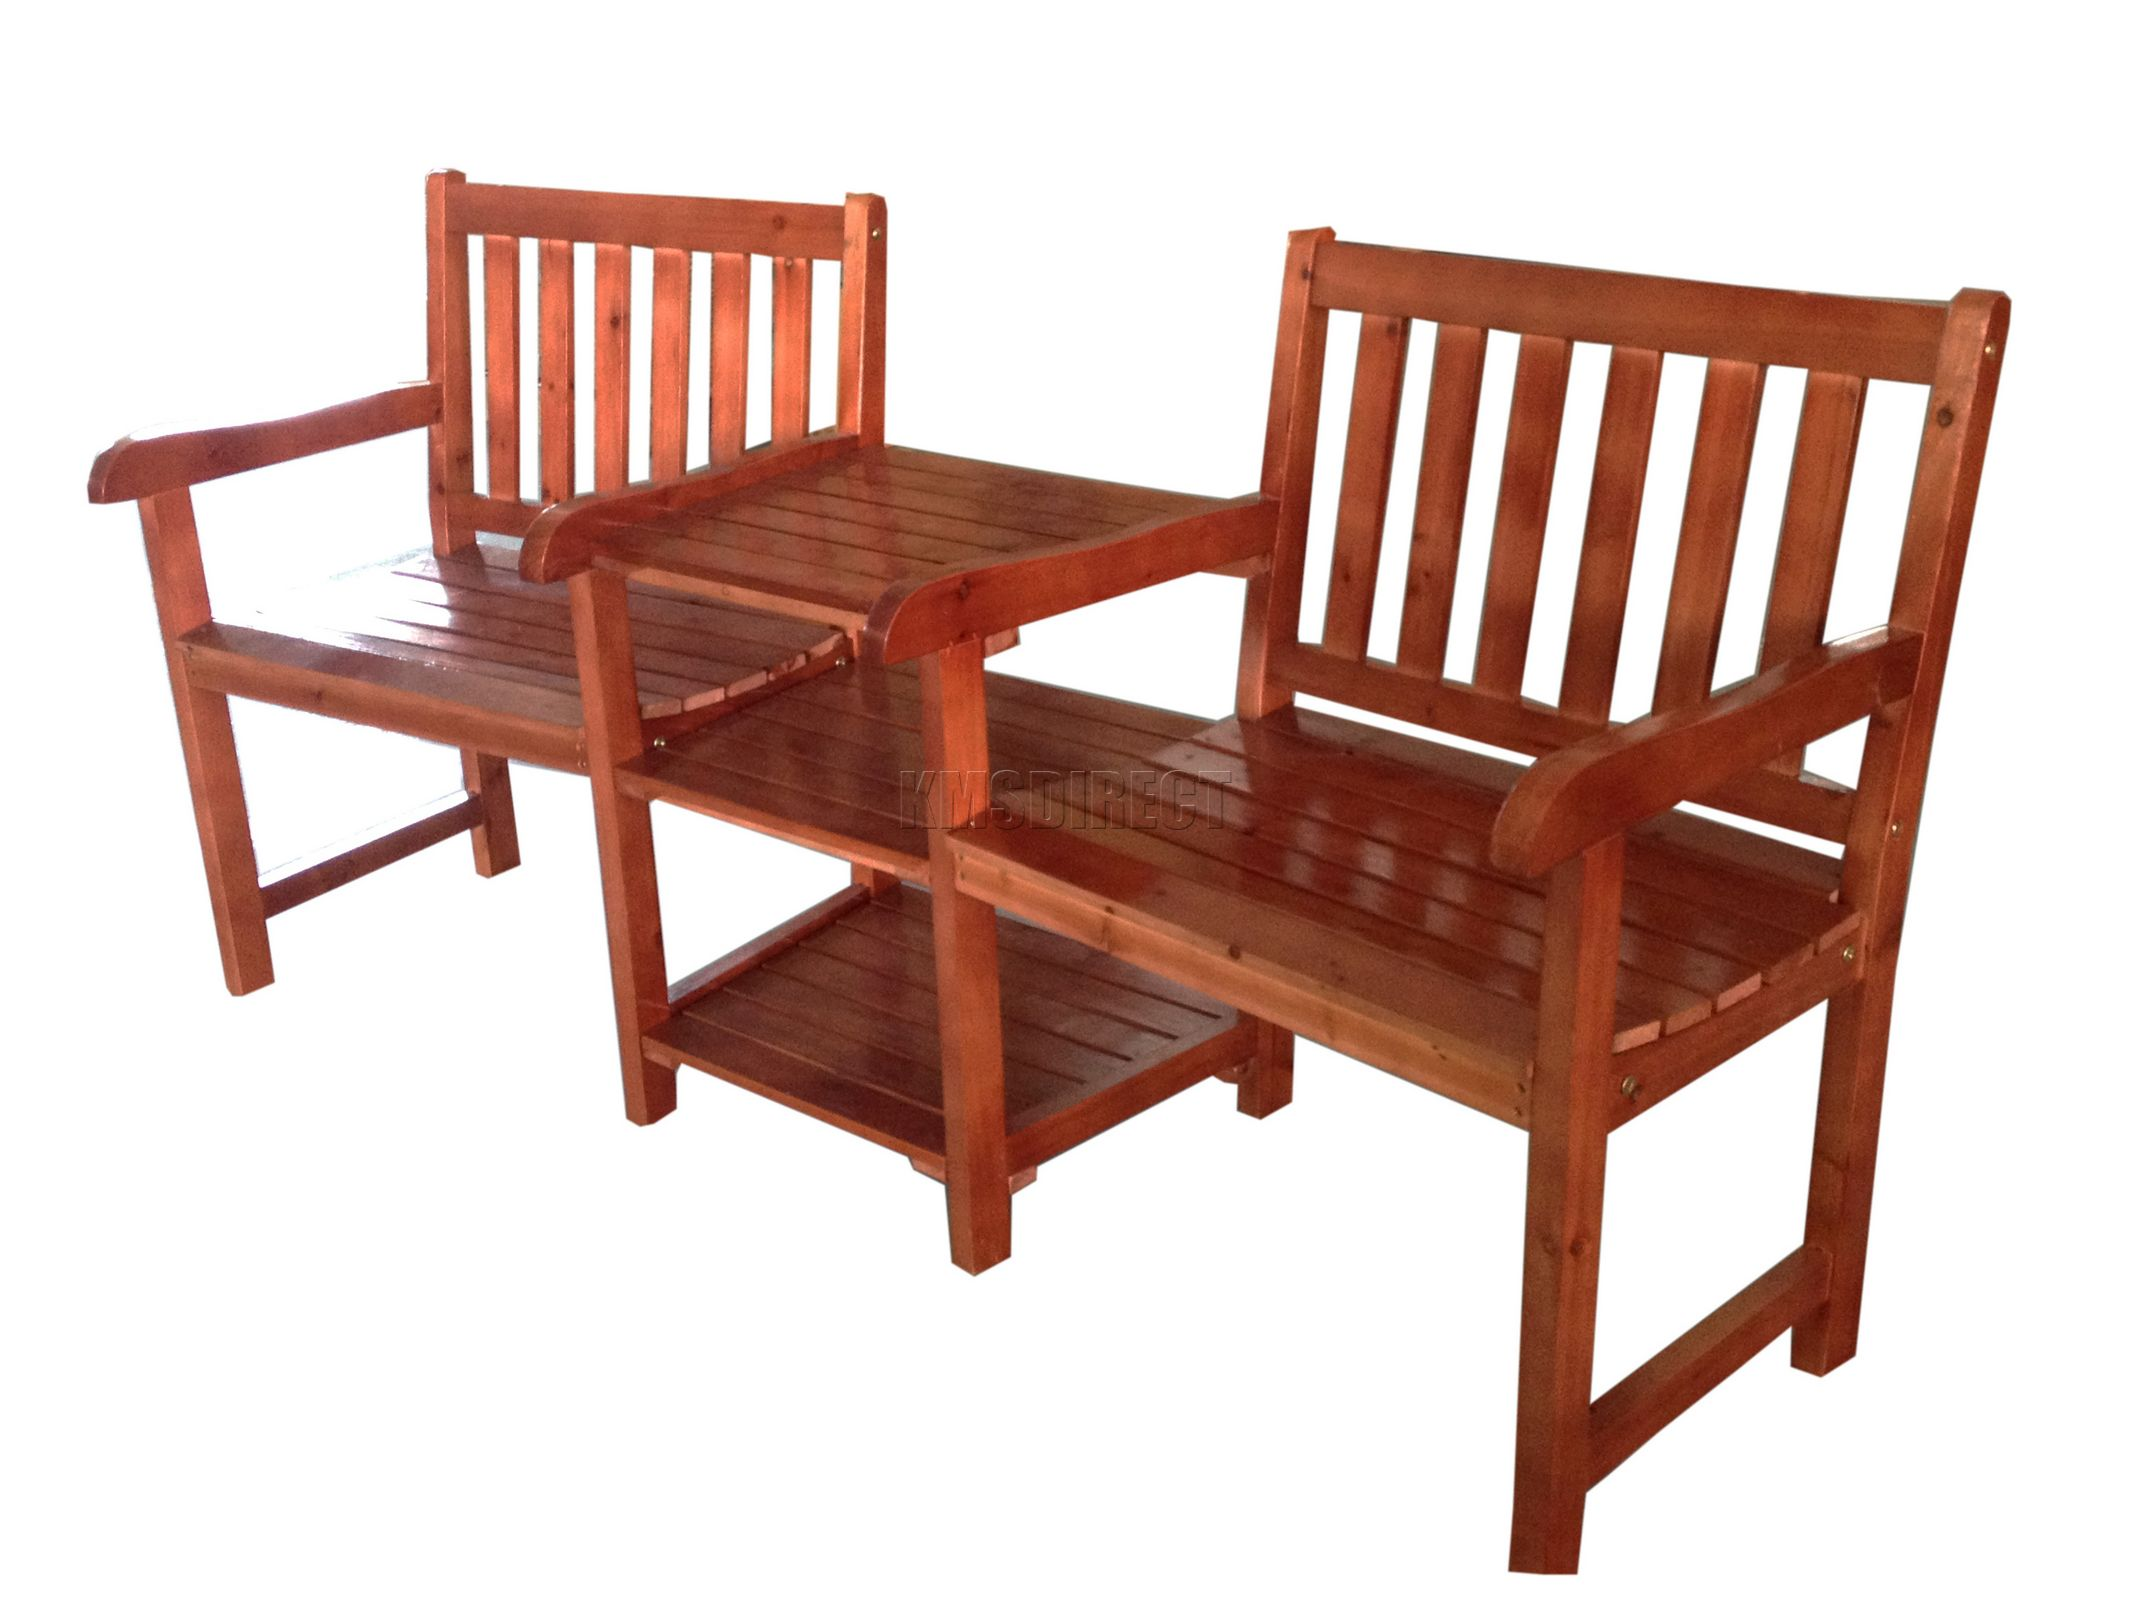 Outdoor Furniture Garden Patio 2 Seater Wooden Companion